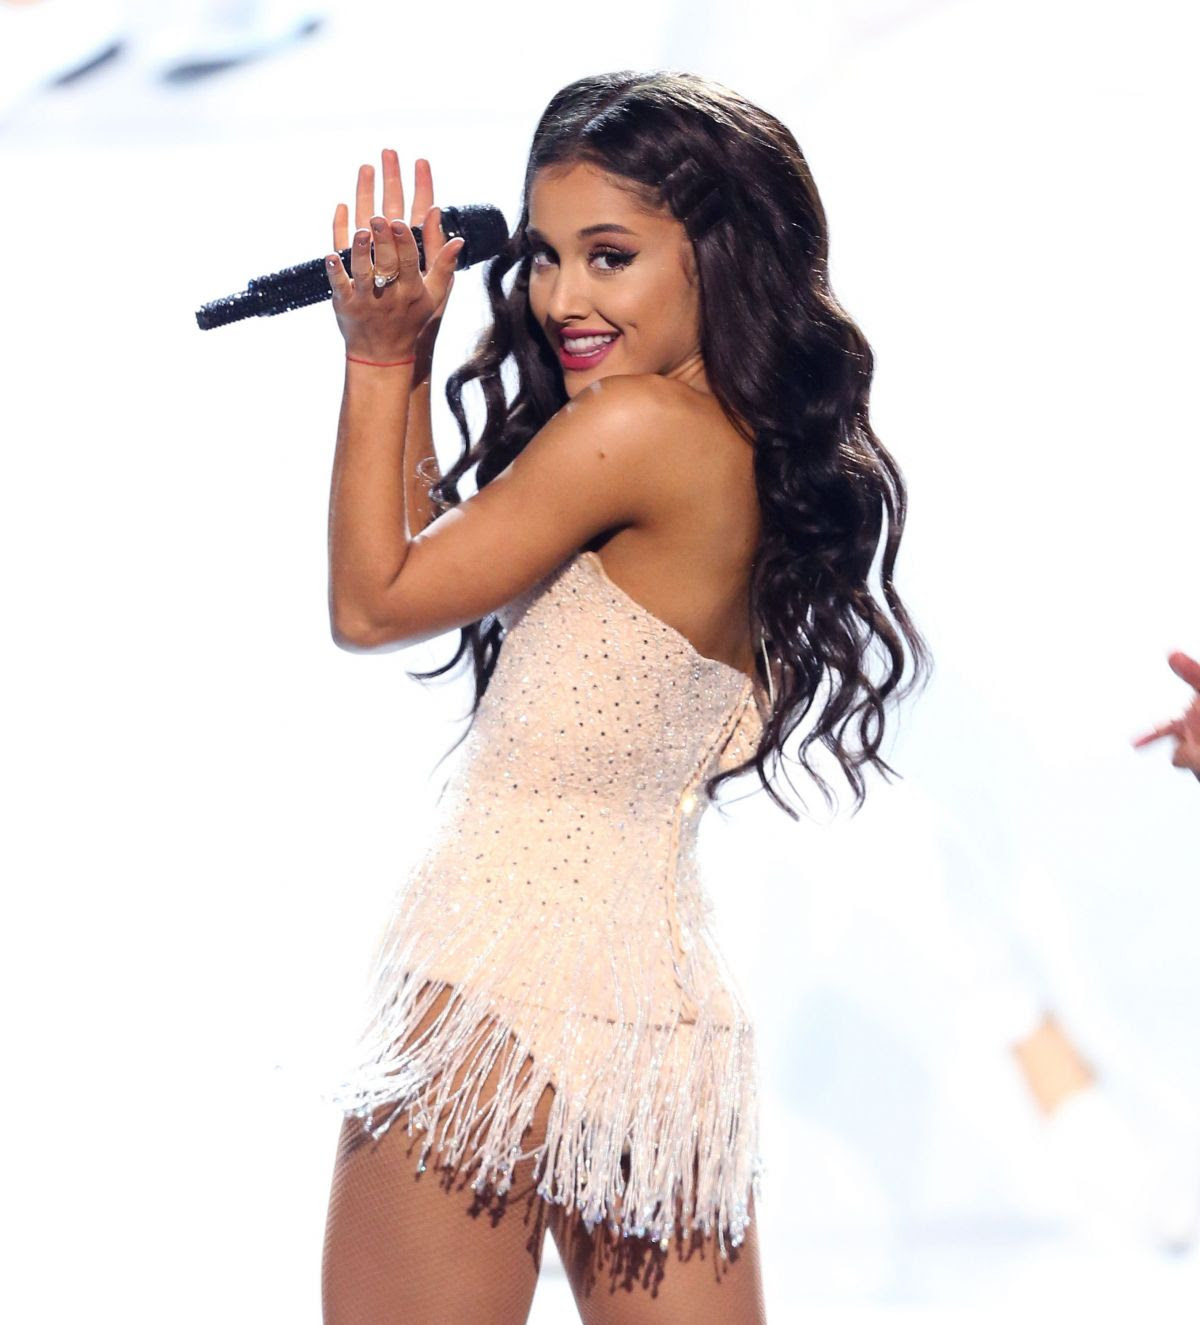 ARIANA GRANDE Performs at American Music Awards 2015 11/22/2015